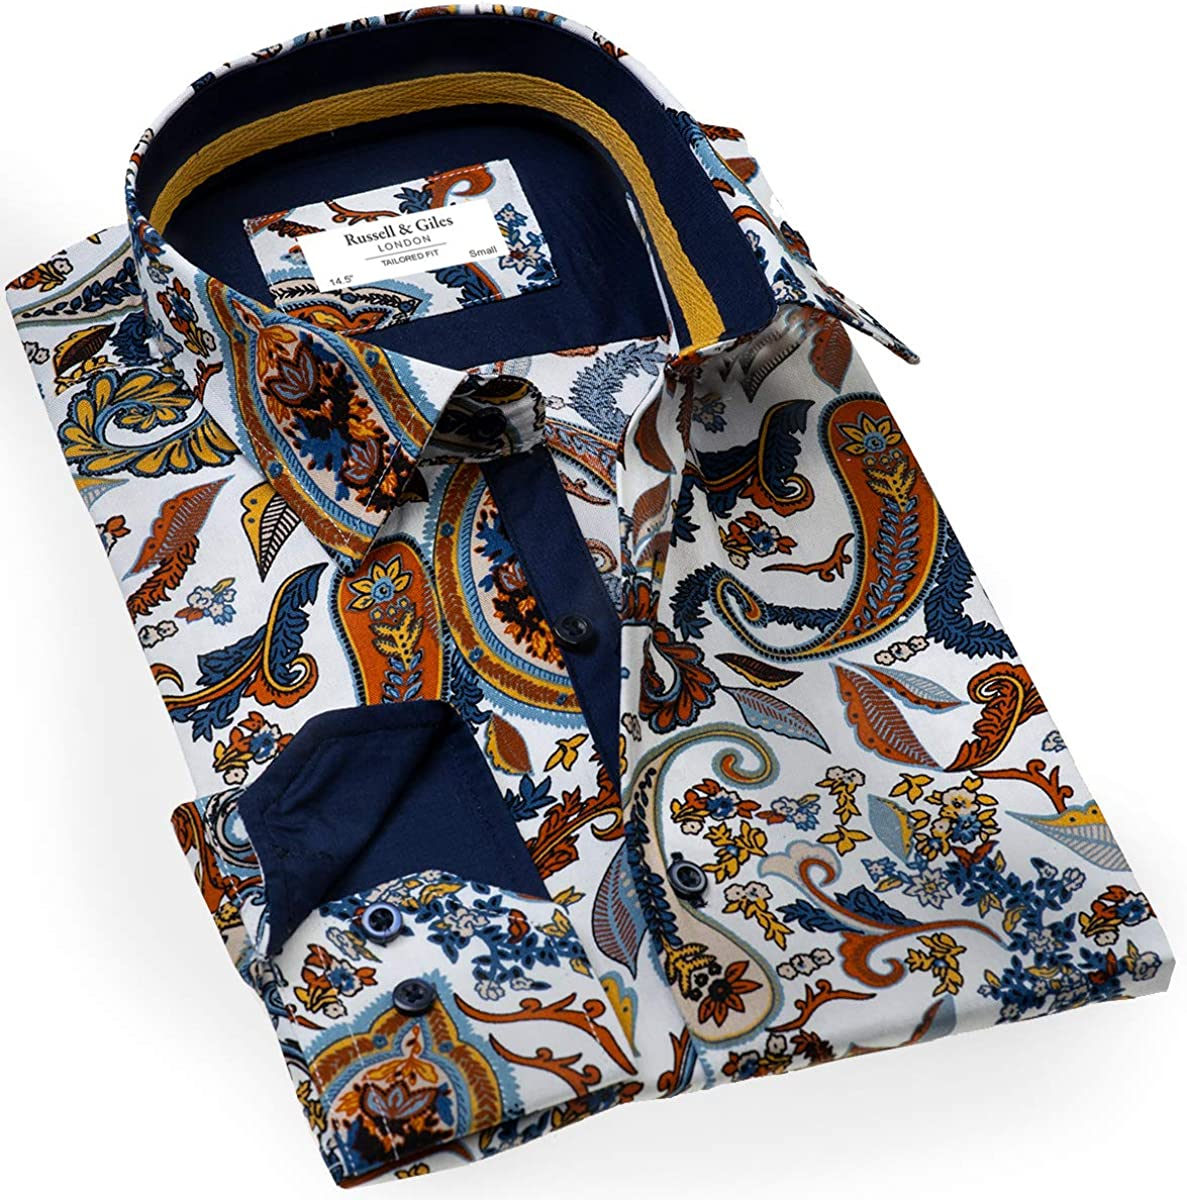 Russell & Giles Mens Pure Cotton Designer Paisley Patterned Shirt